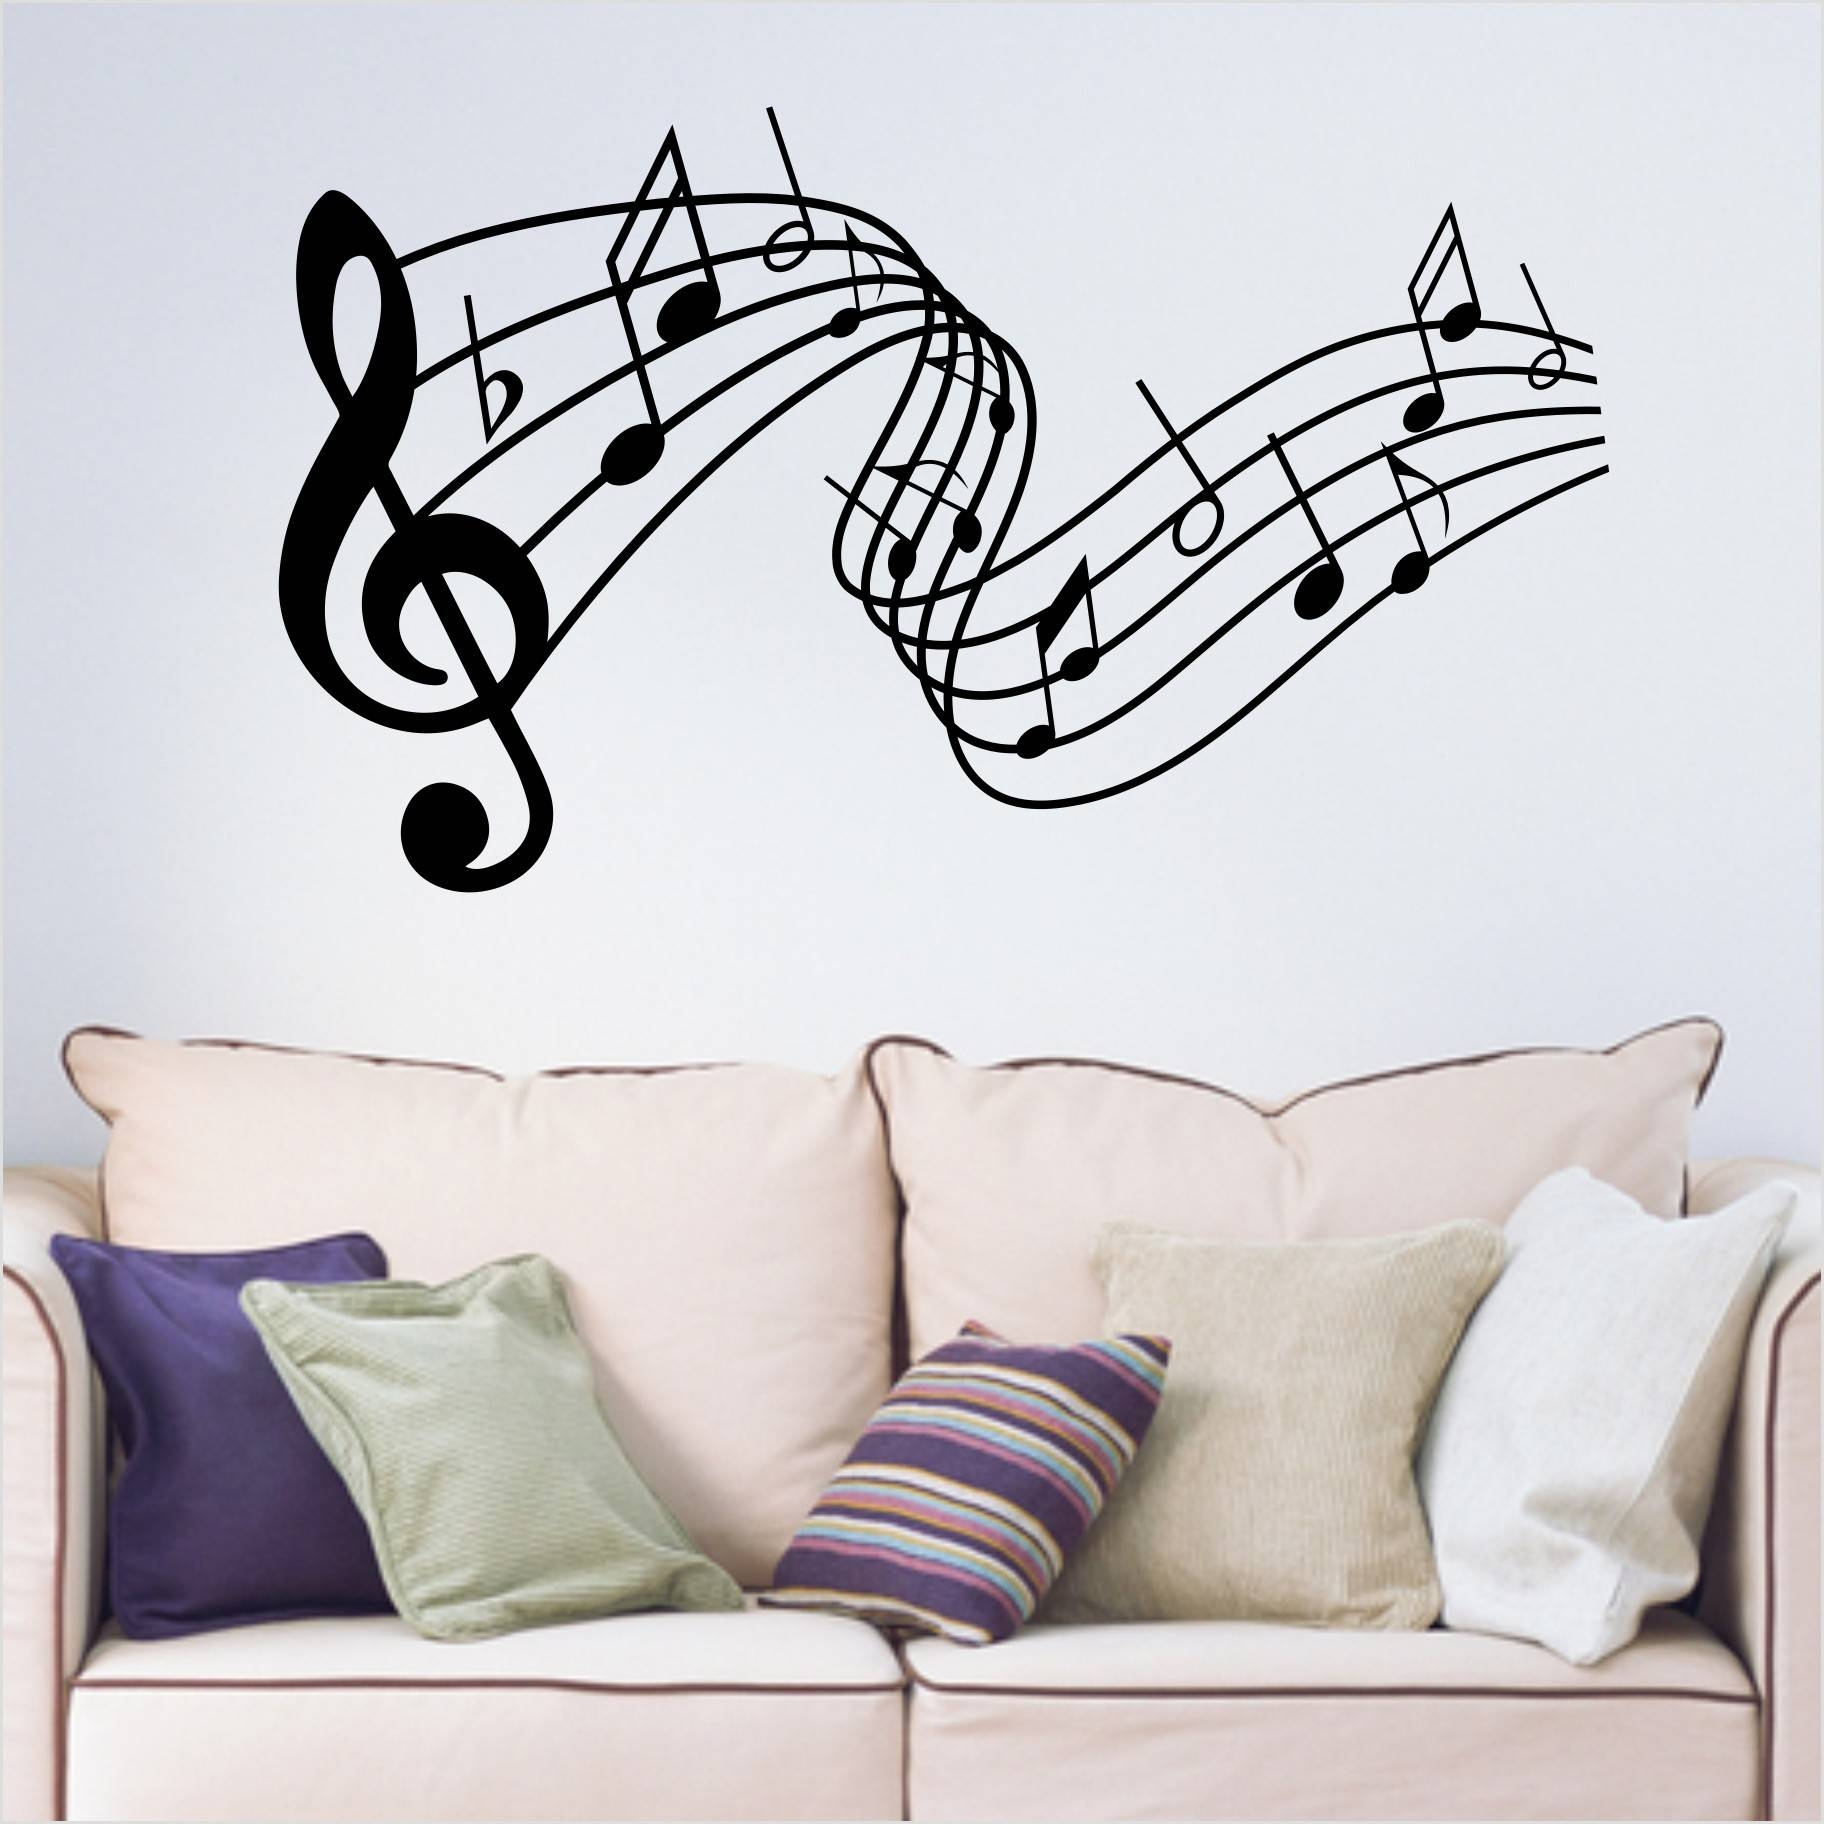 Music Notes Wall Art Decals Images That Really Cool – Desainnow With 2018 Music Note Wall Art (View 13 of 20)